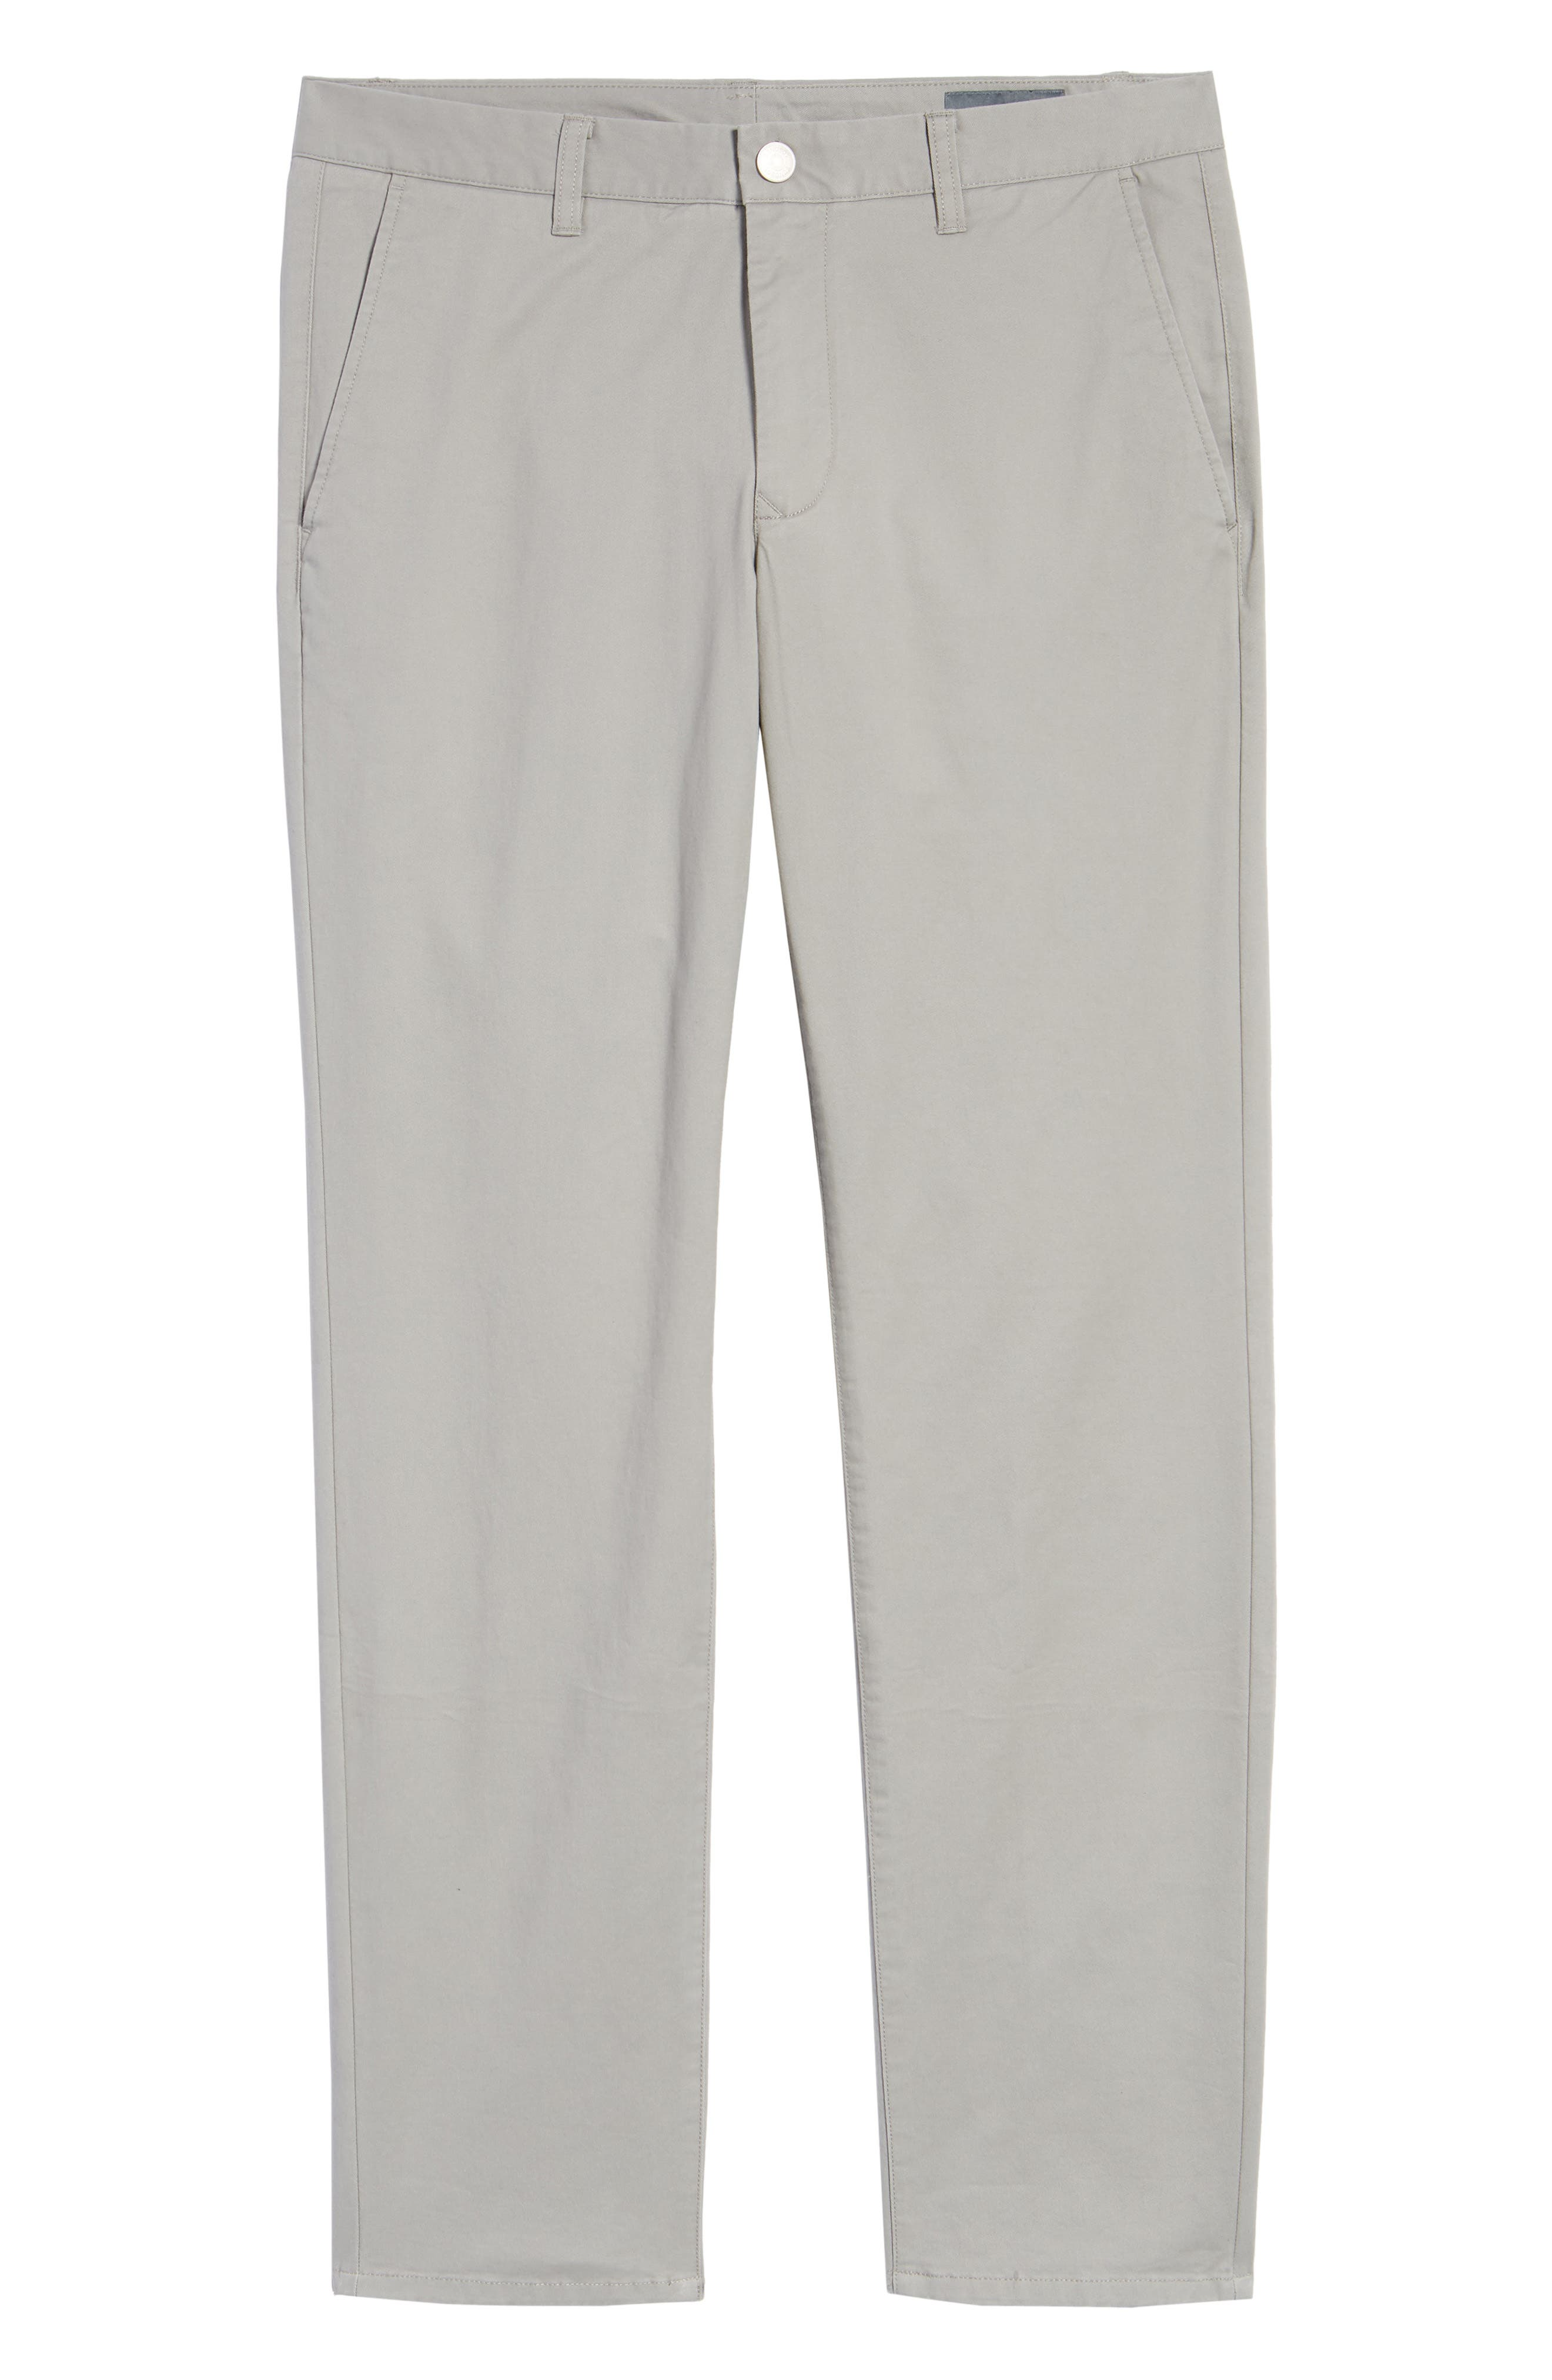 BONOBOS,                             Athletic Fit Stretch Washed Chinos,                             Alternate thumbnail 6, color,                             GREY DOGS